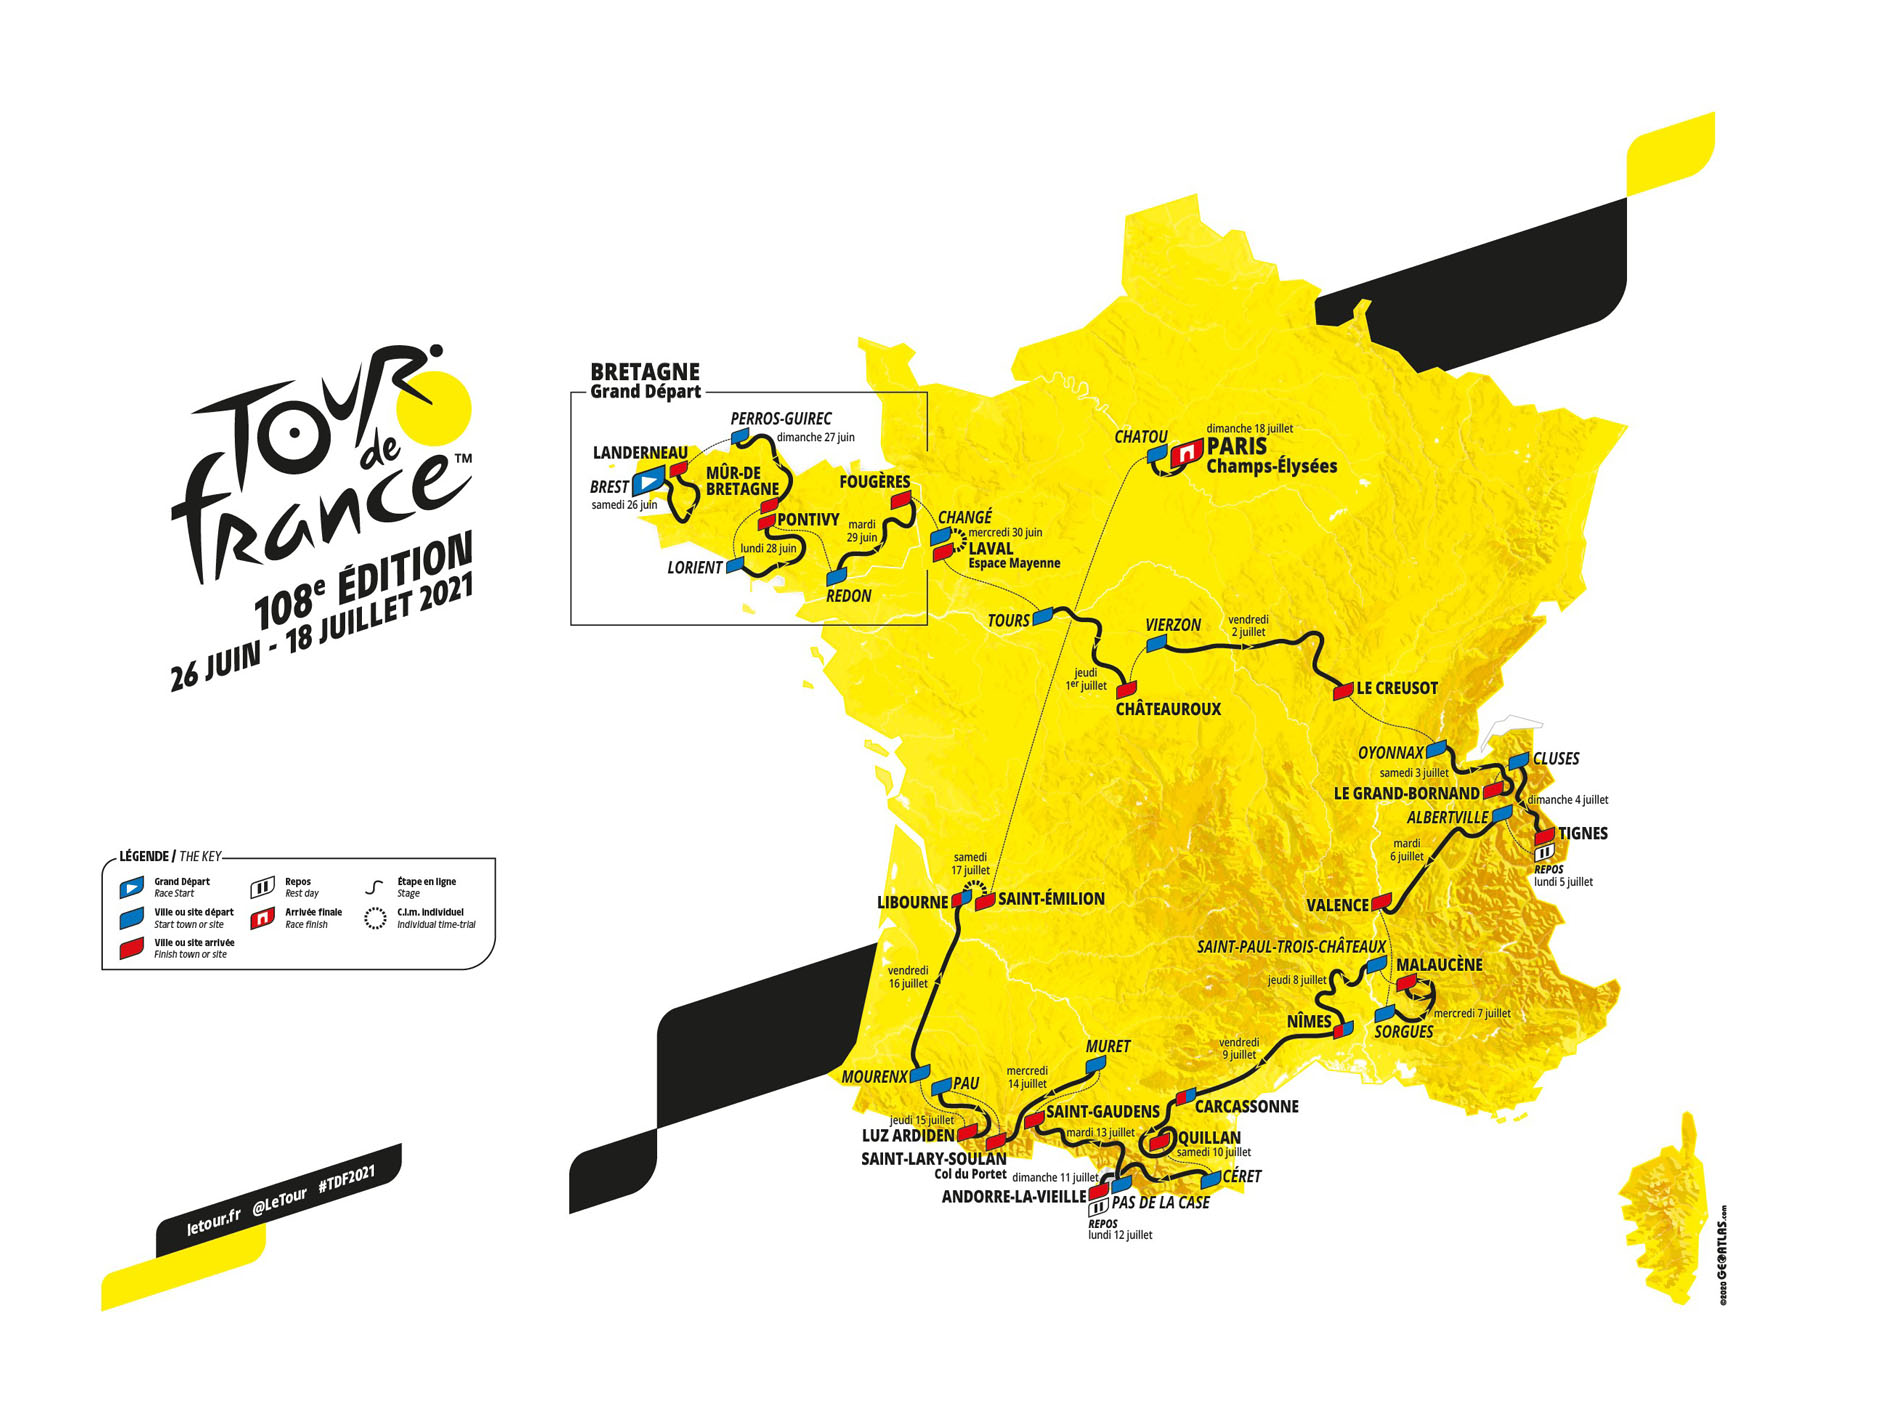 Tour de France 2021 : champ d'expression pour l'agriculture